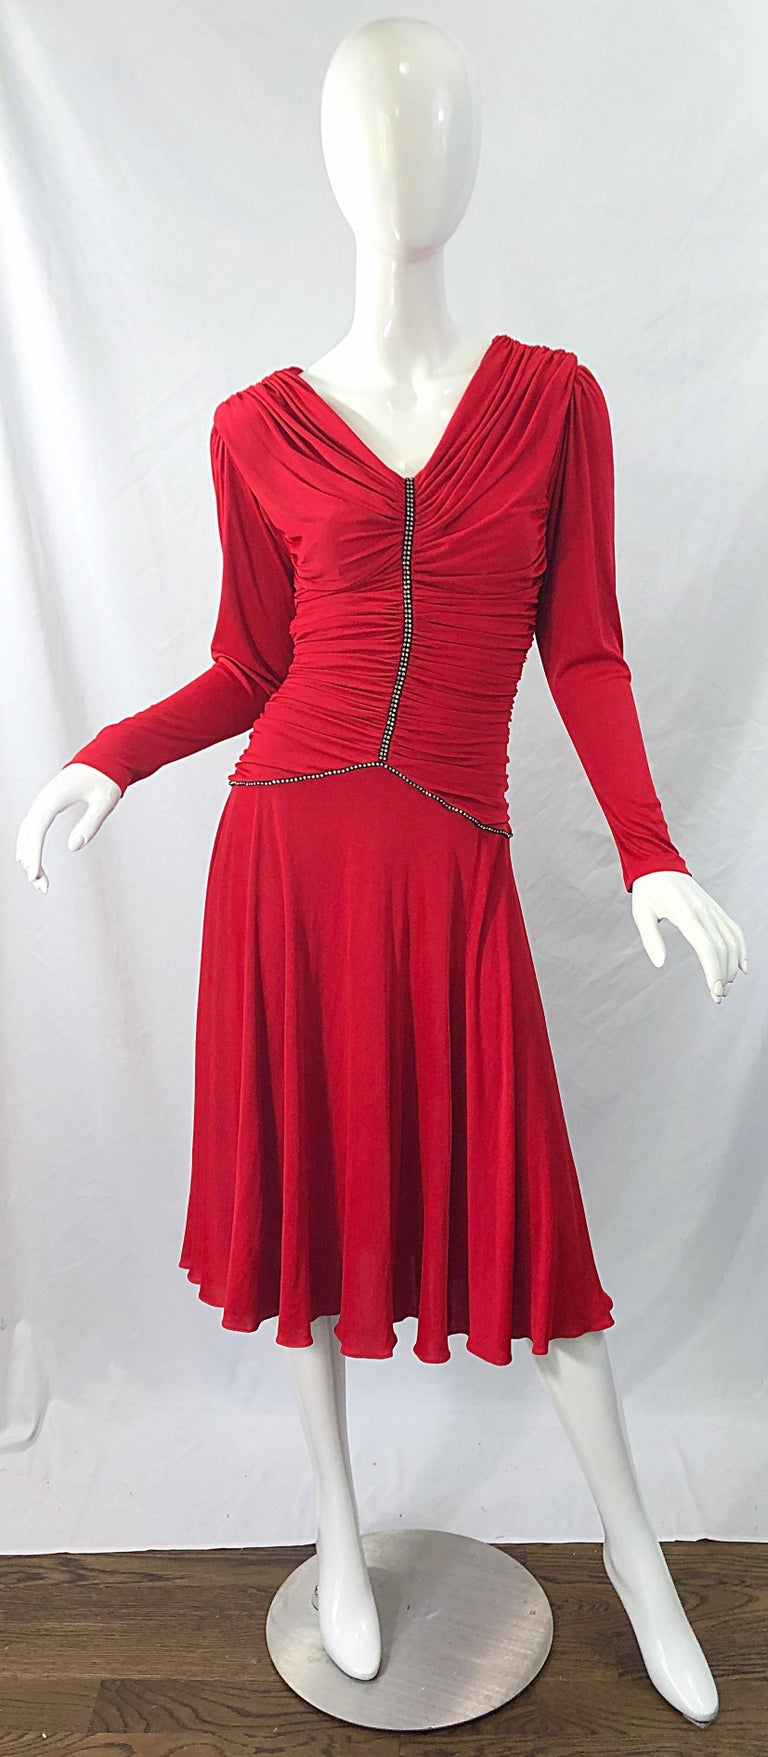 Beautiful late 1970s CLARALUNA ORGINIAL lipstick red rhinestone encrusted long sleeve vintage jersey dress ! Features a tailored flattering ruched bodice, with rhinestones down the front center and waistband. Soft rayon stretches to fit. Hidden